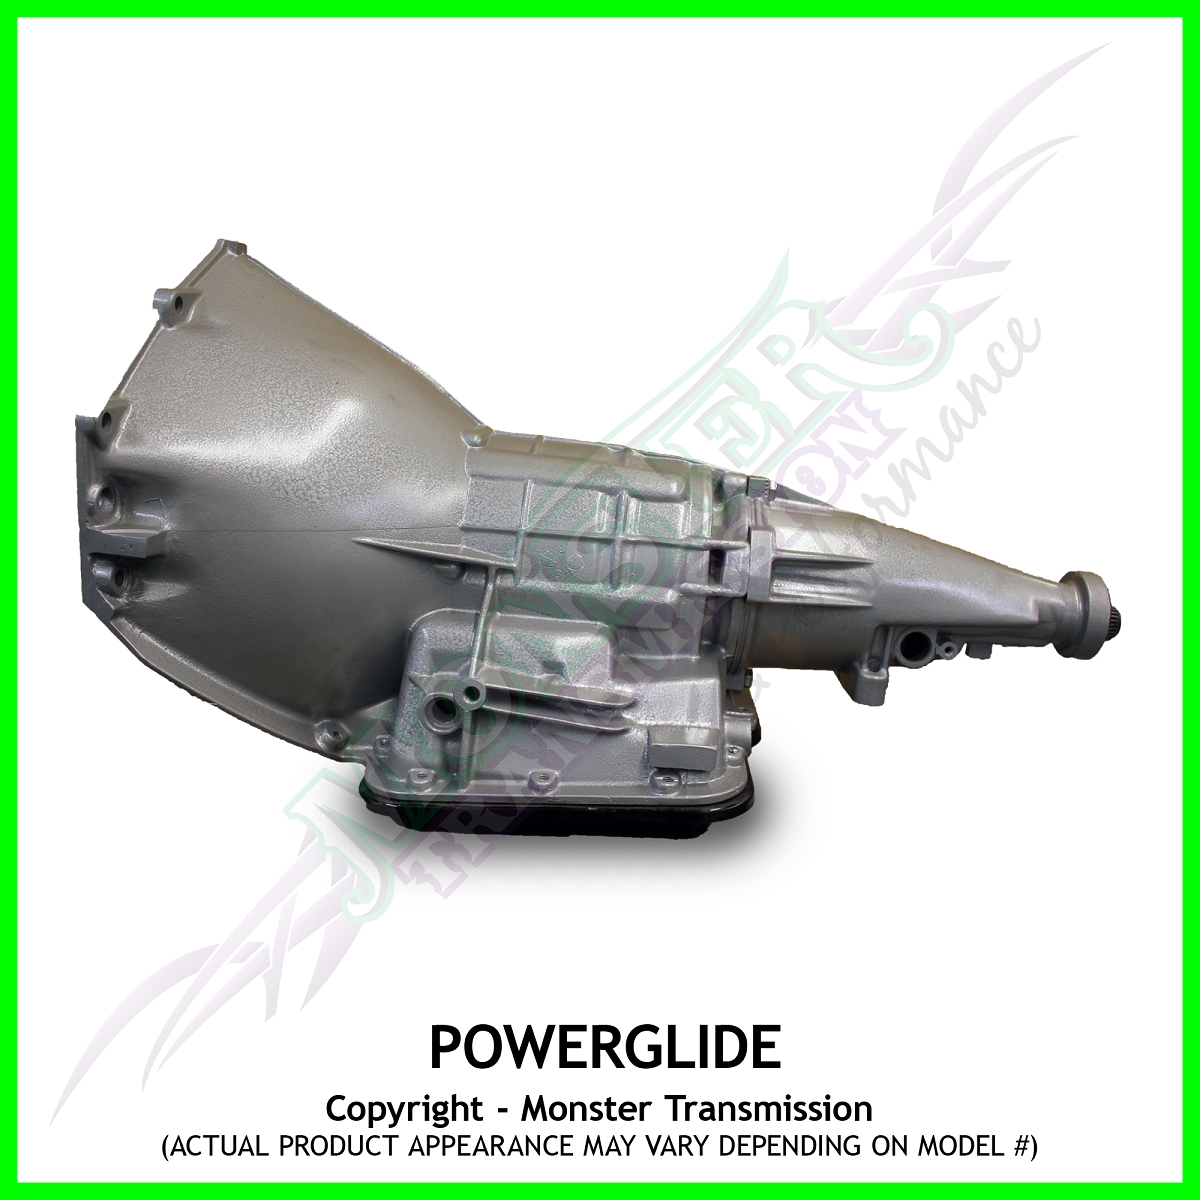 Powerglide Mega Monster Performance Transmission - Rated Up To 1100hp